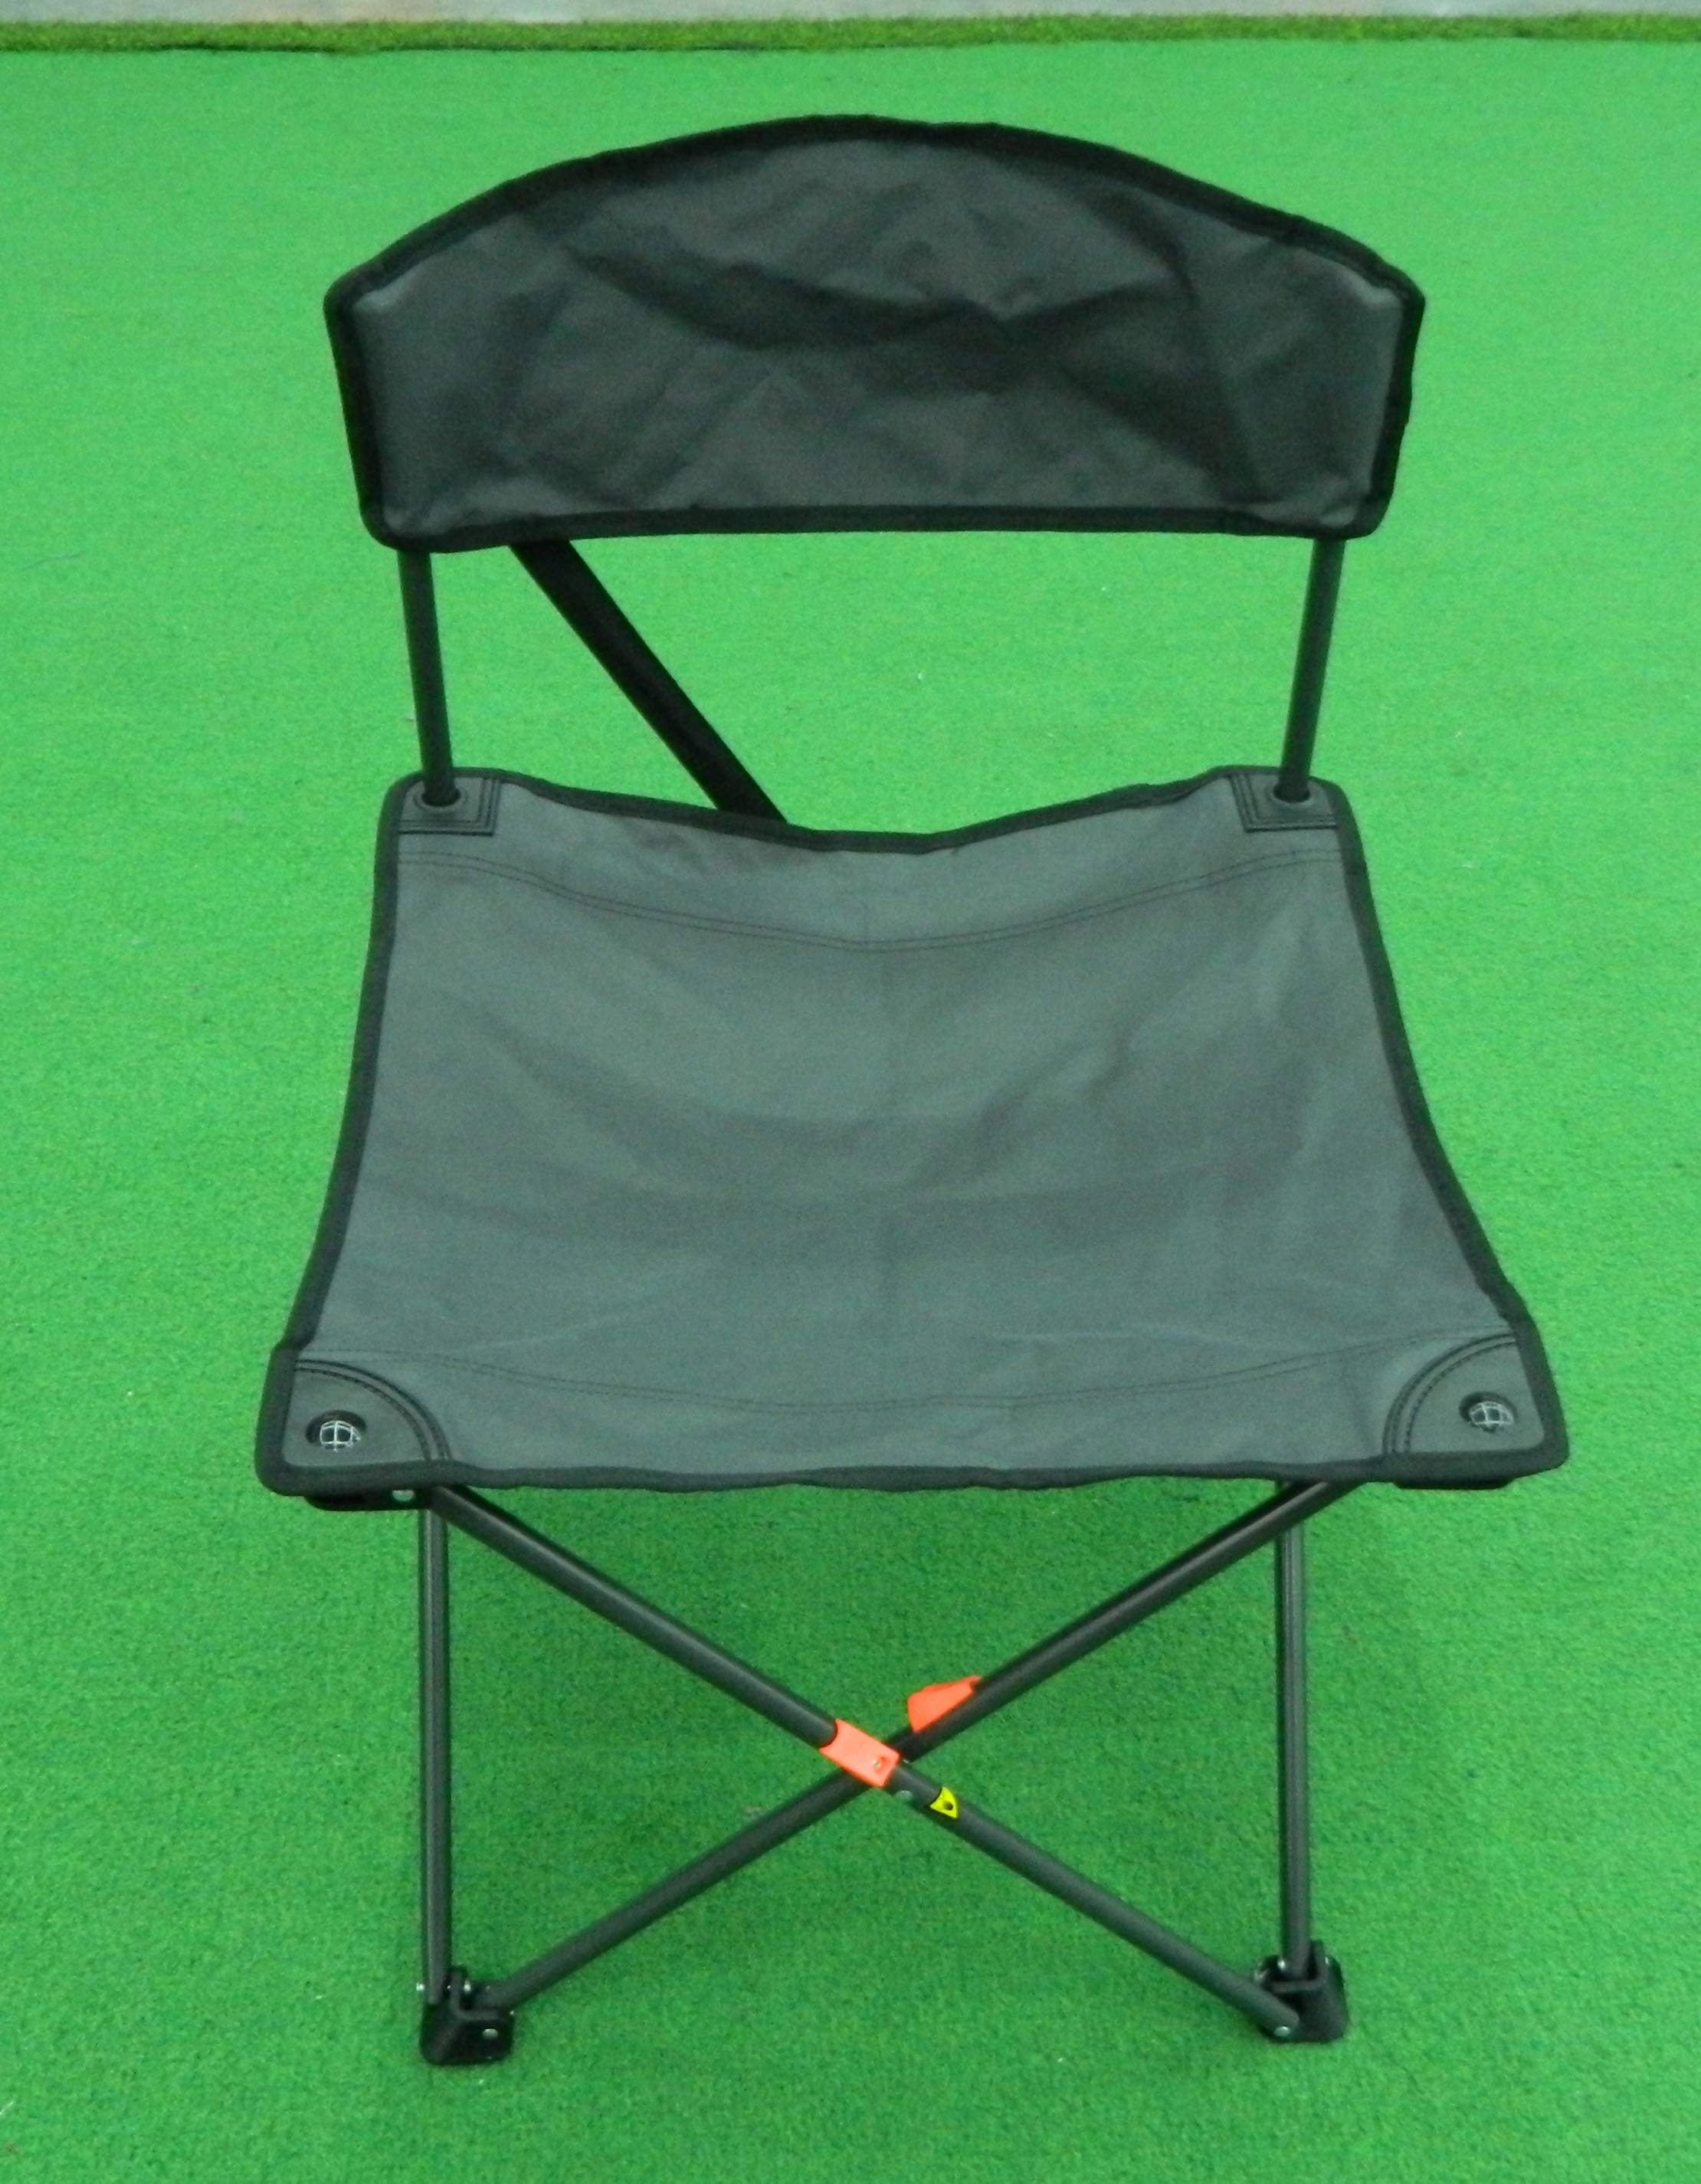 Collapsible Chair Cheap Purchase China Agnet Decathlon Outdoor Folding Chair